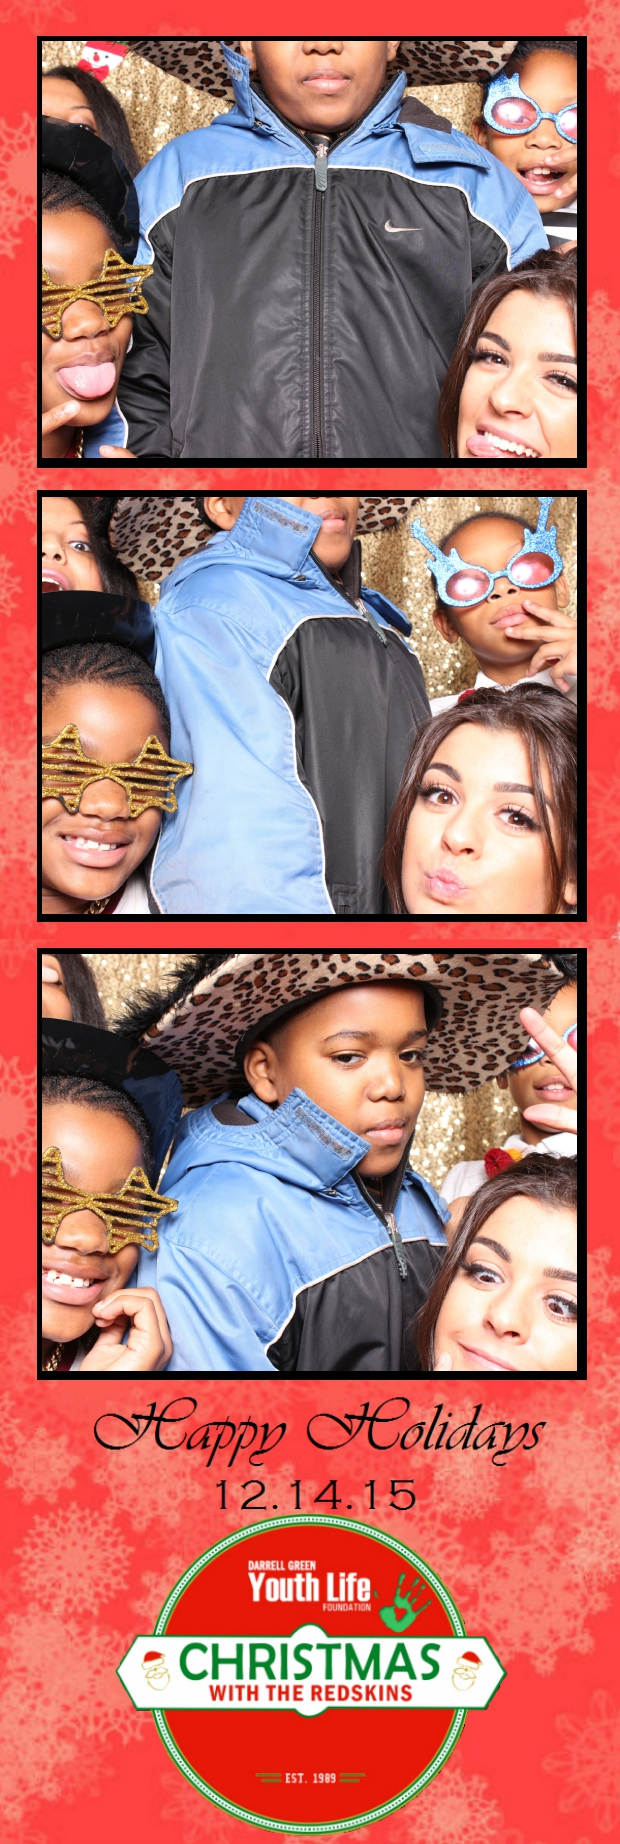 Guest House Events Photo Booth DGYLF Strips (18).jpg